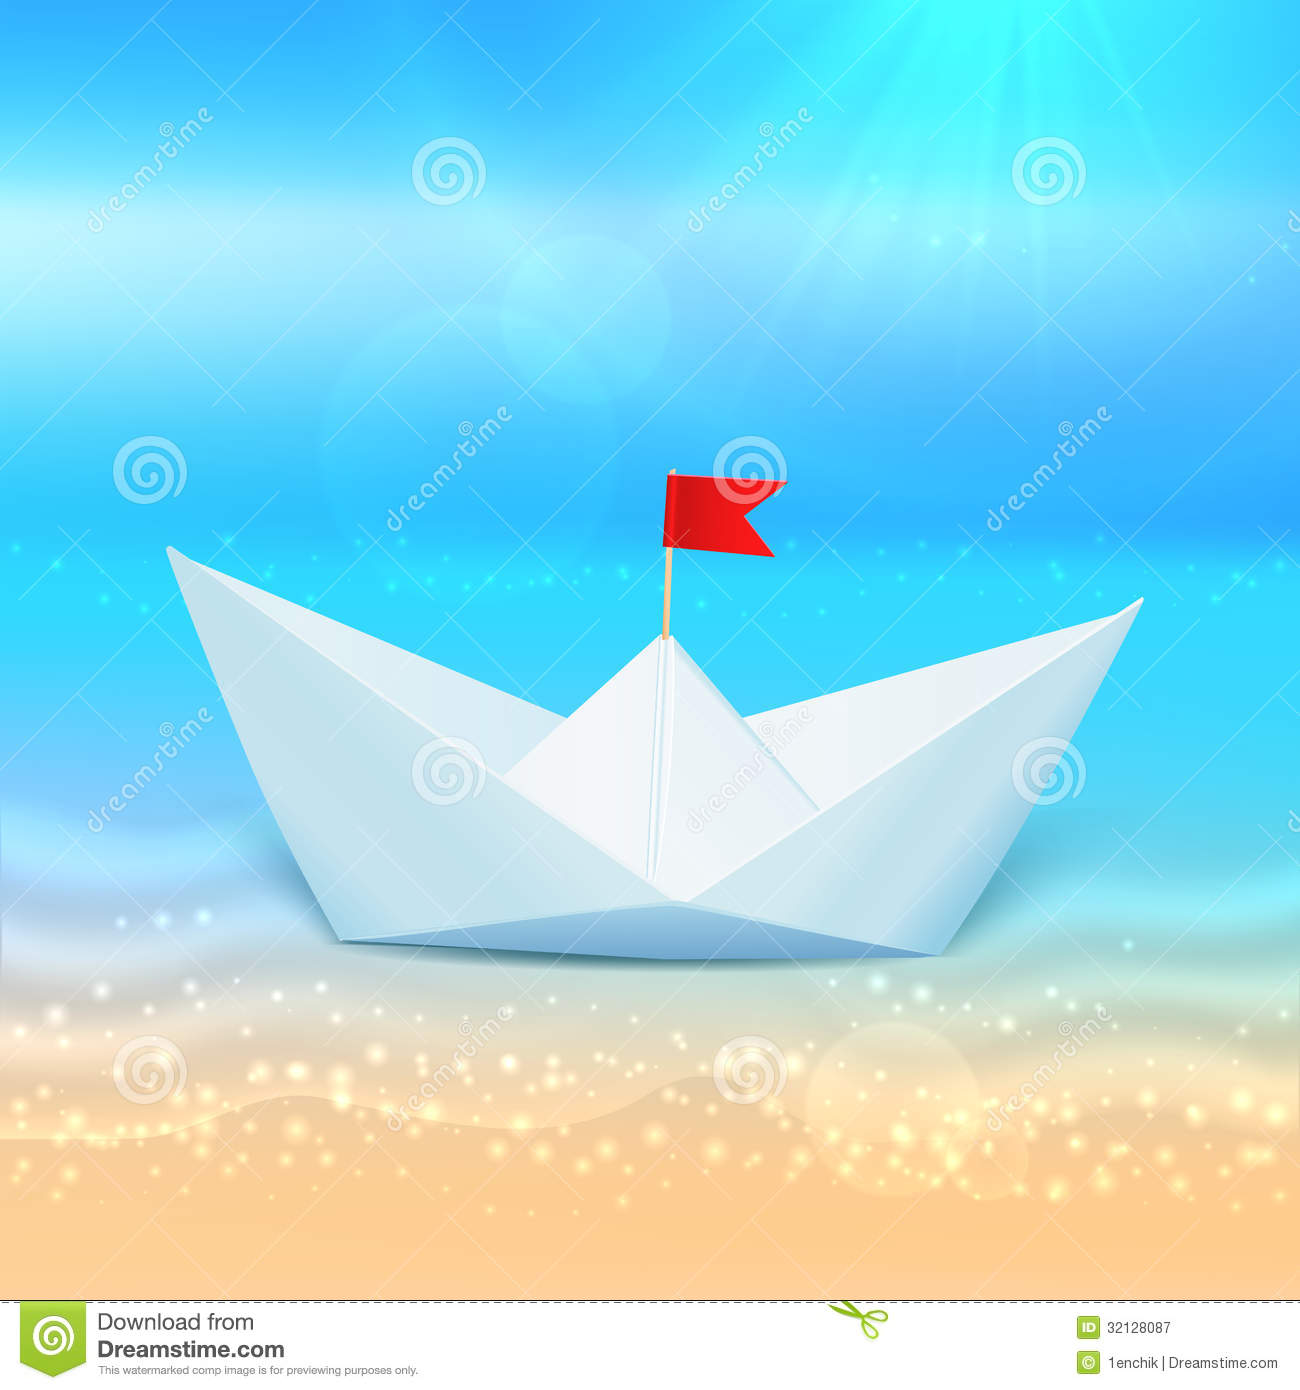 Little Vector Paper Boat In A Blue Sea Royalty Free Stock Photography - Image: 32128087